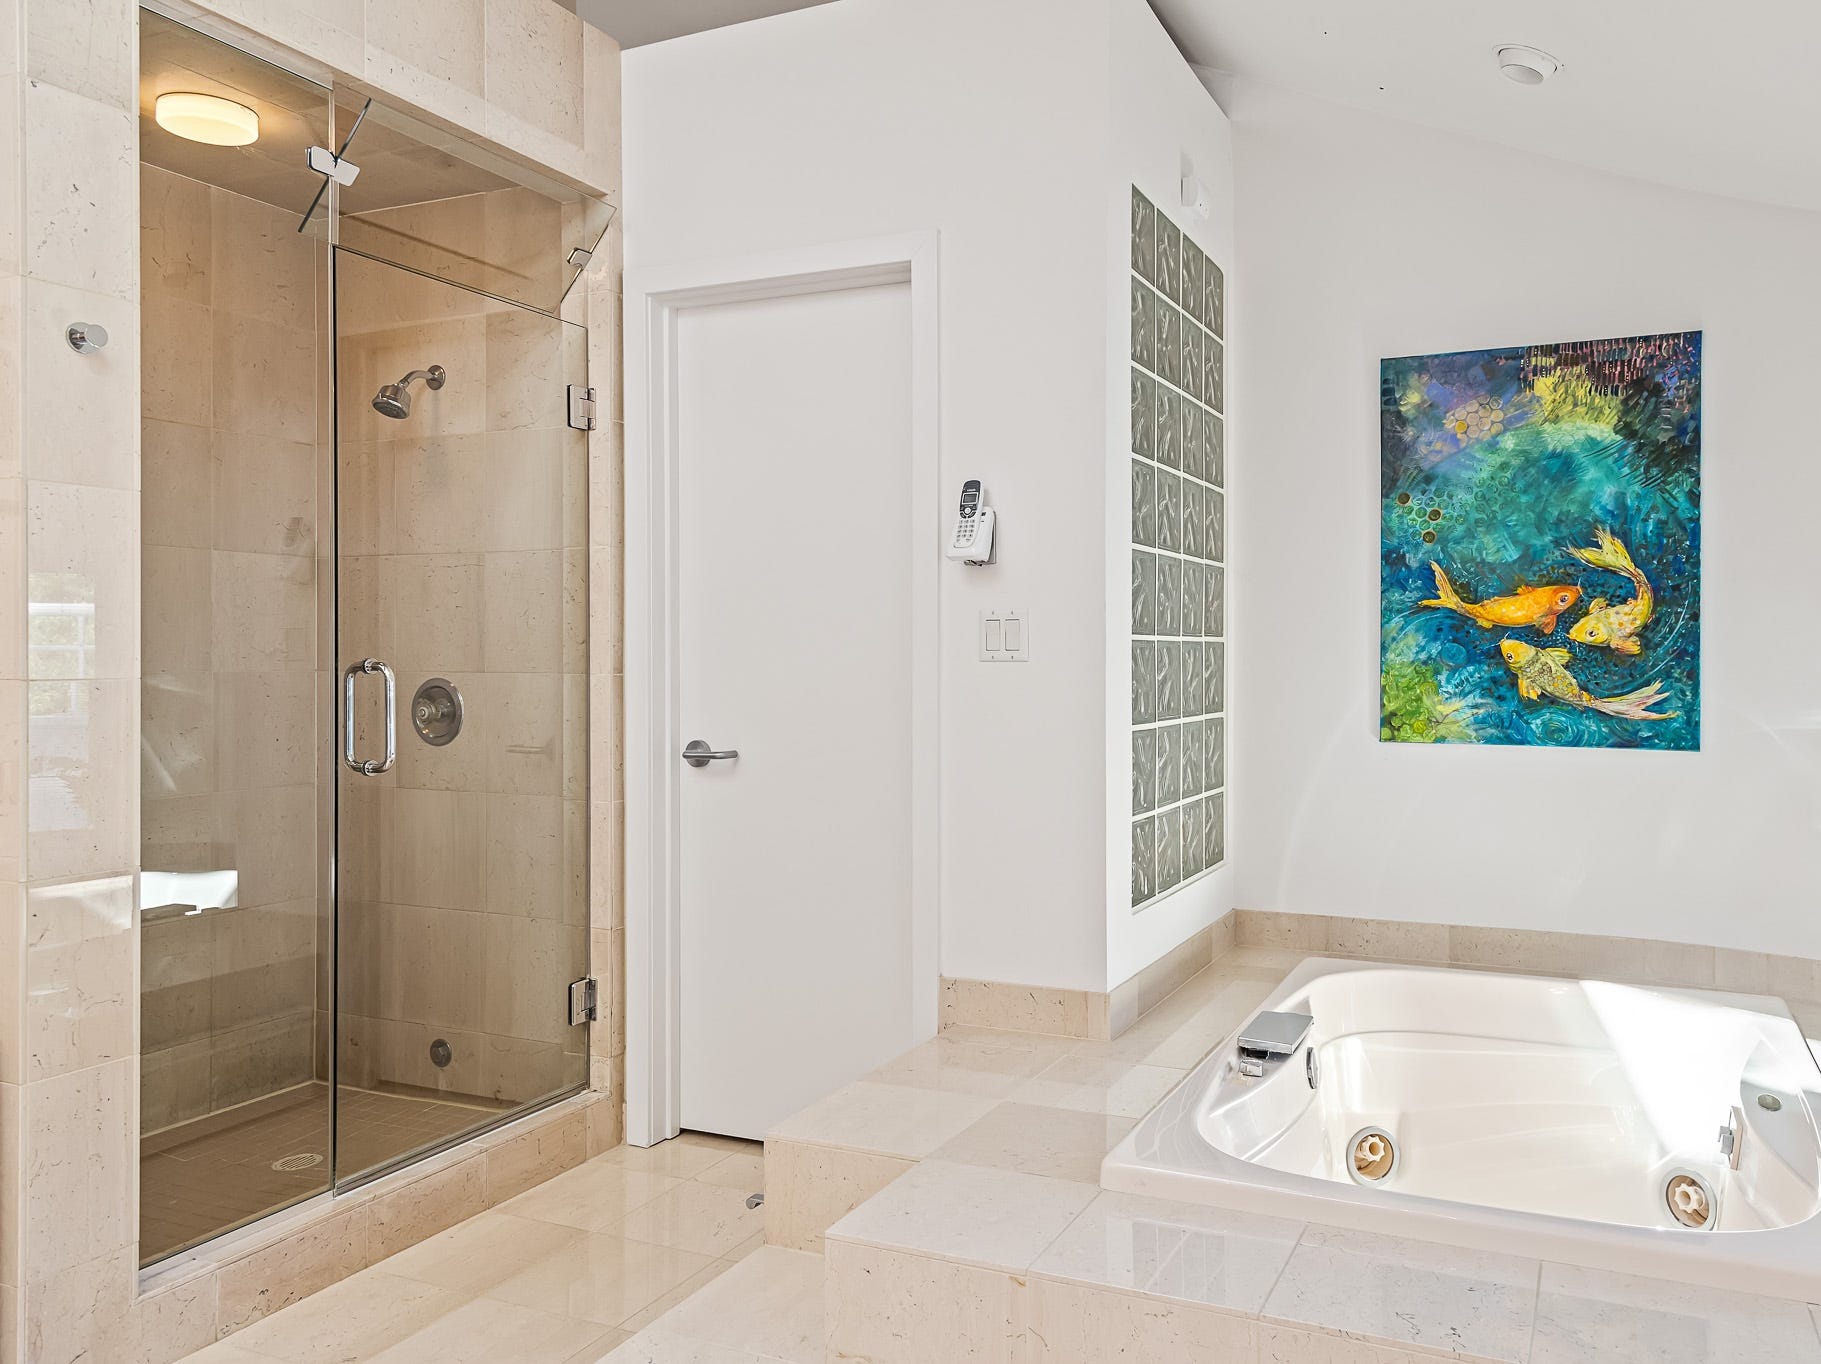 The large master bath at 3611 Centerville Road in Greenville features a jetted tub and a steam shower.